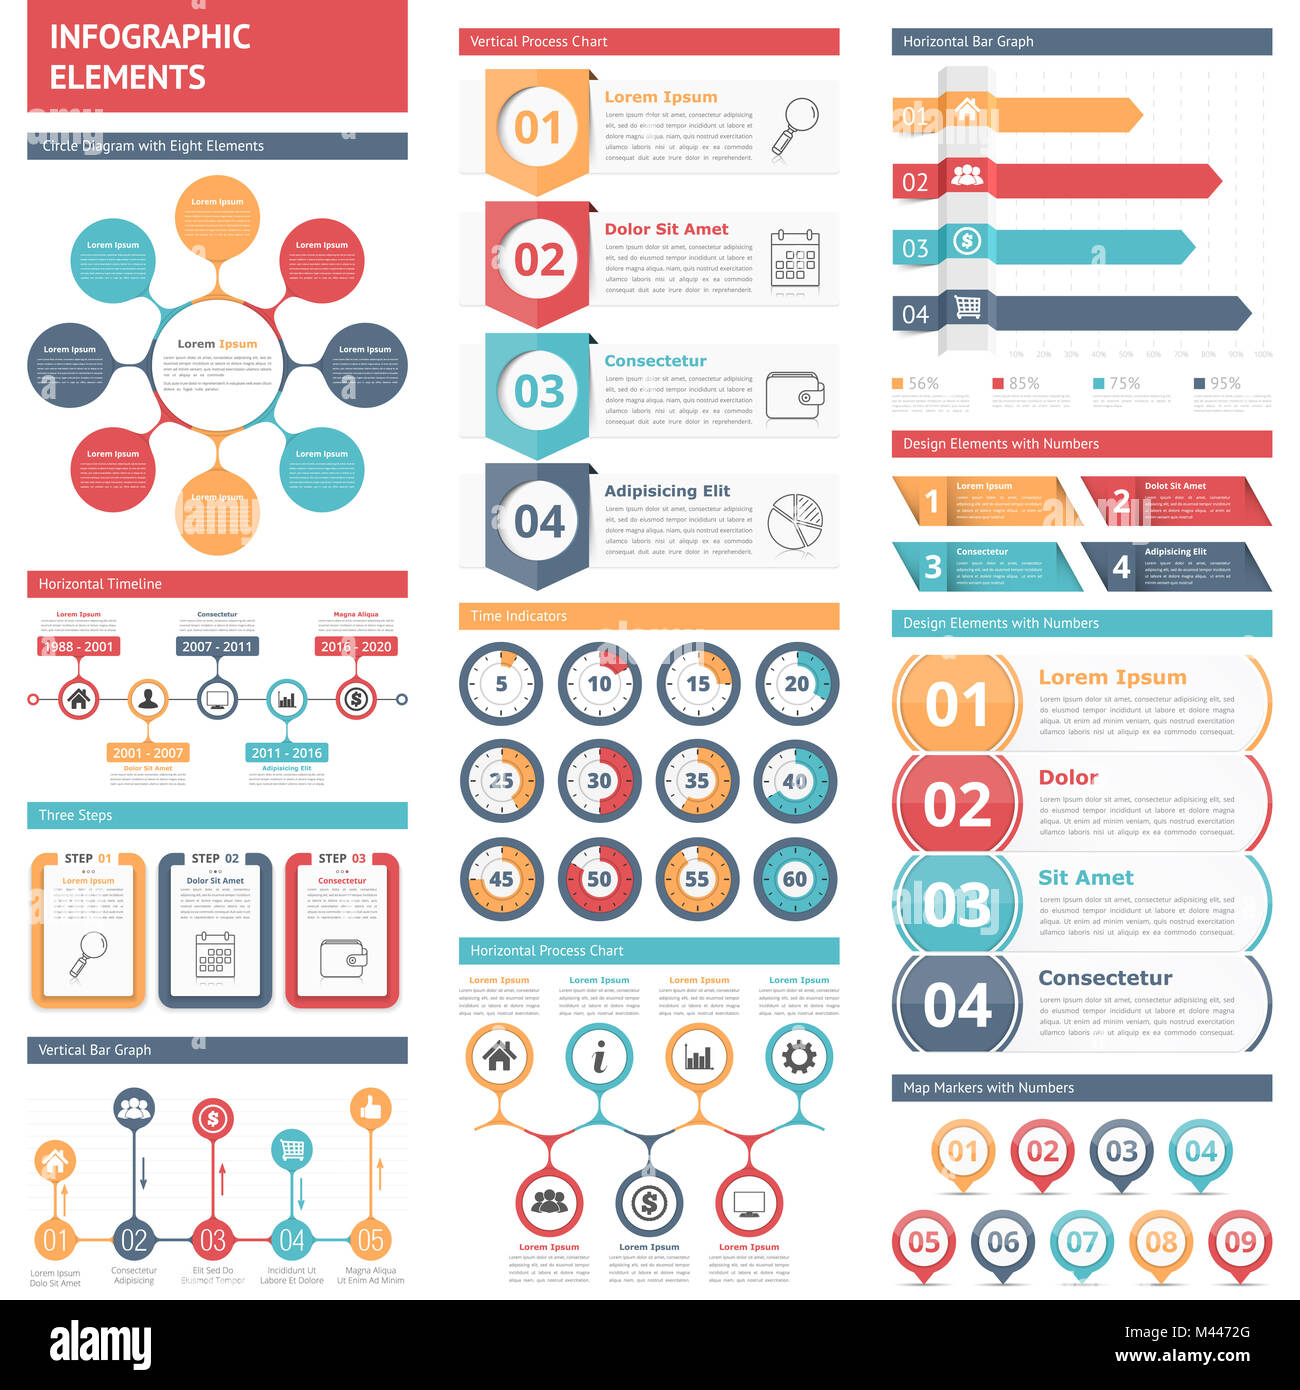 infographic elements circle diagram timeline bar graphs design